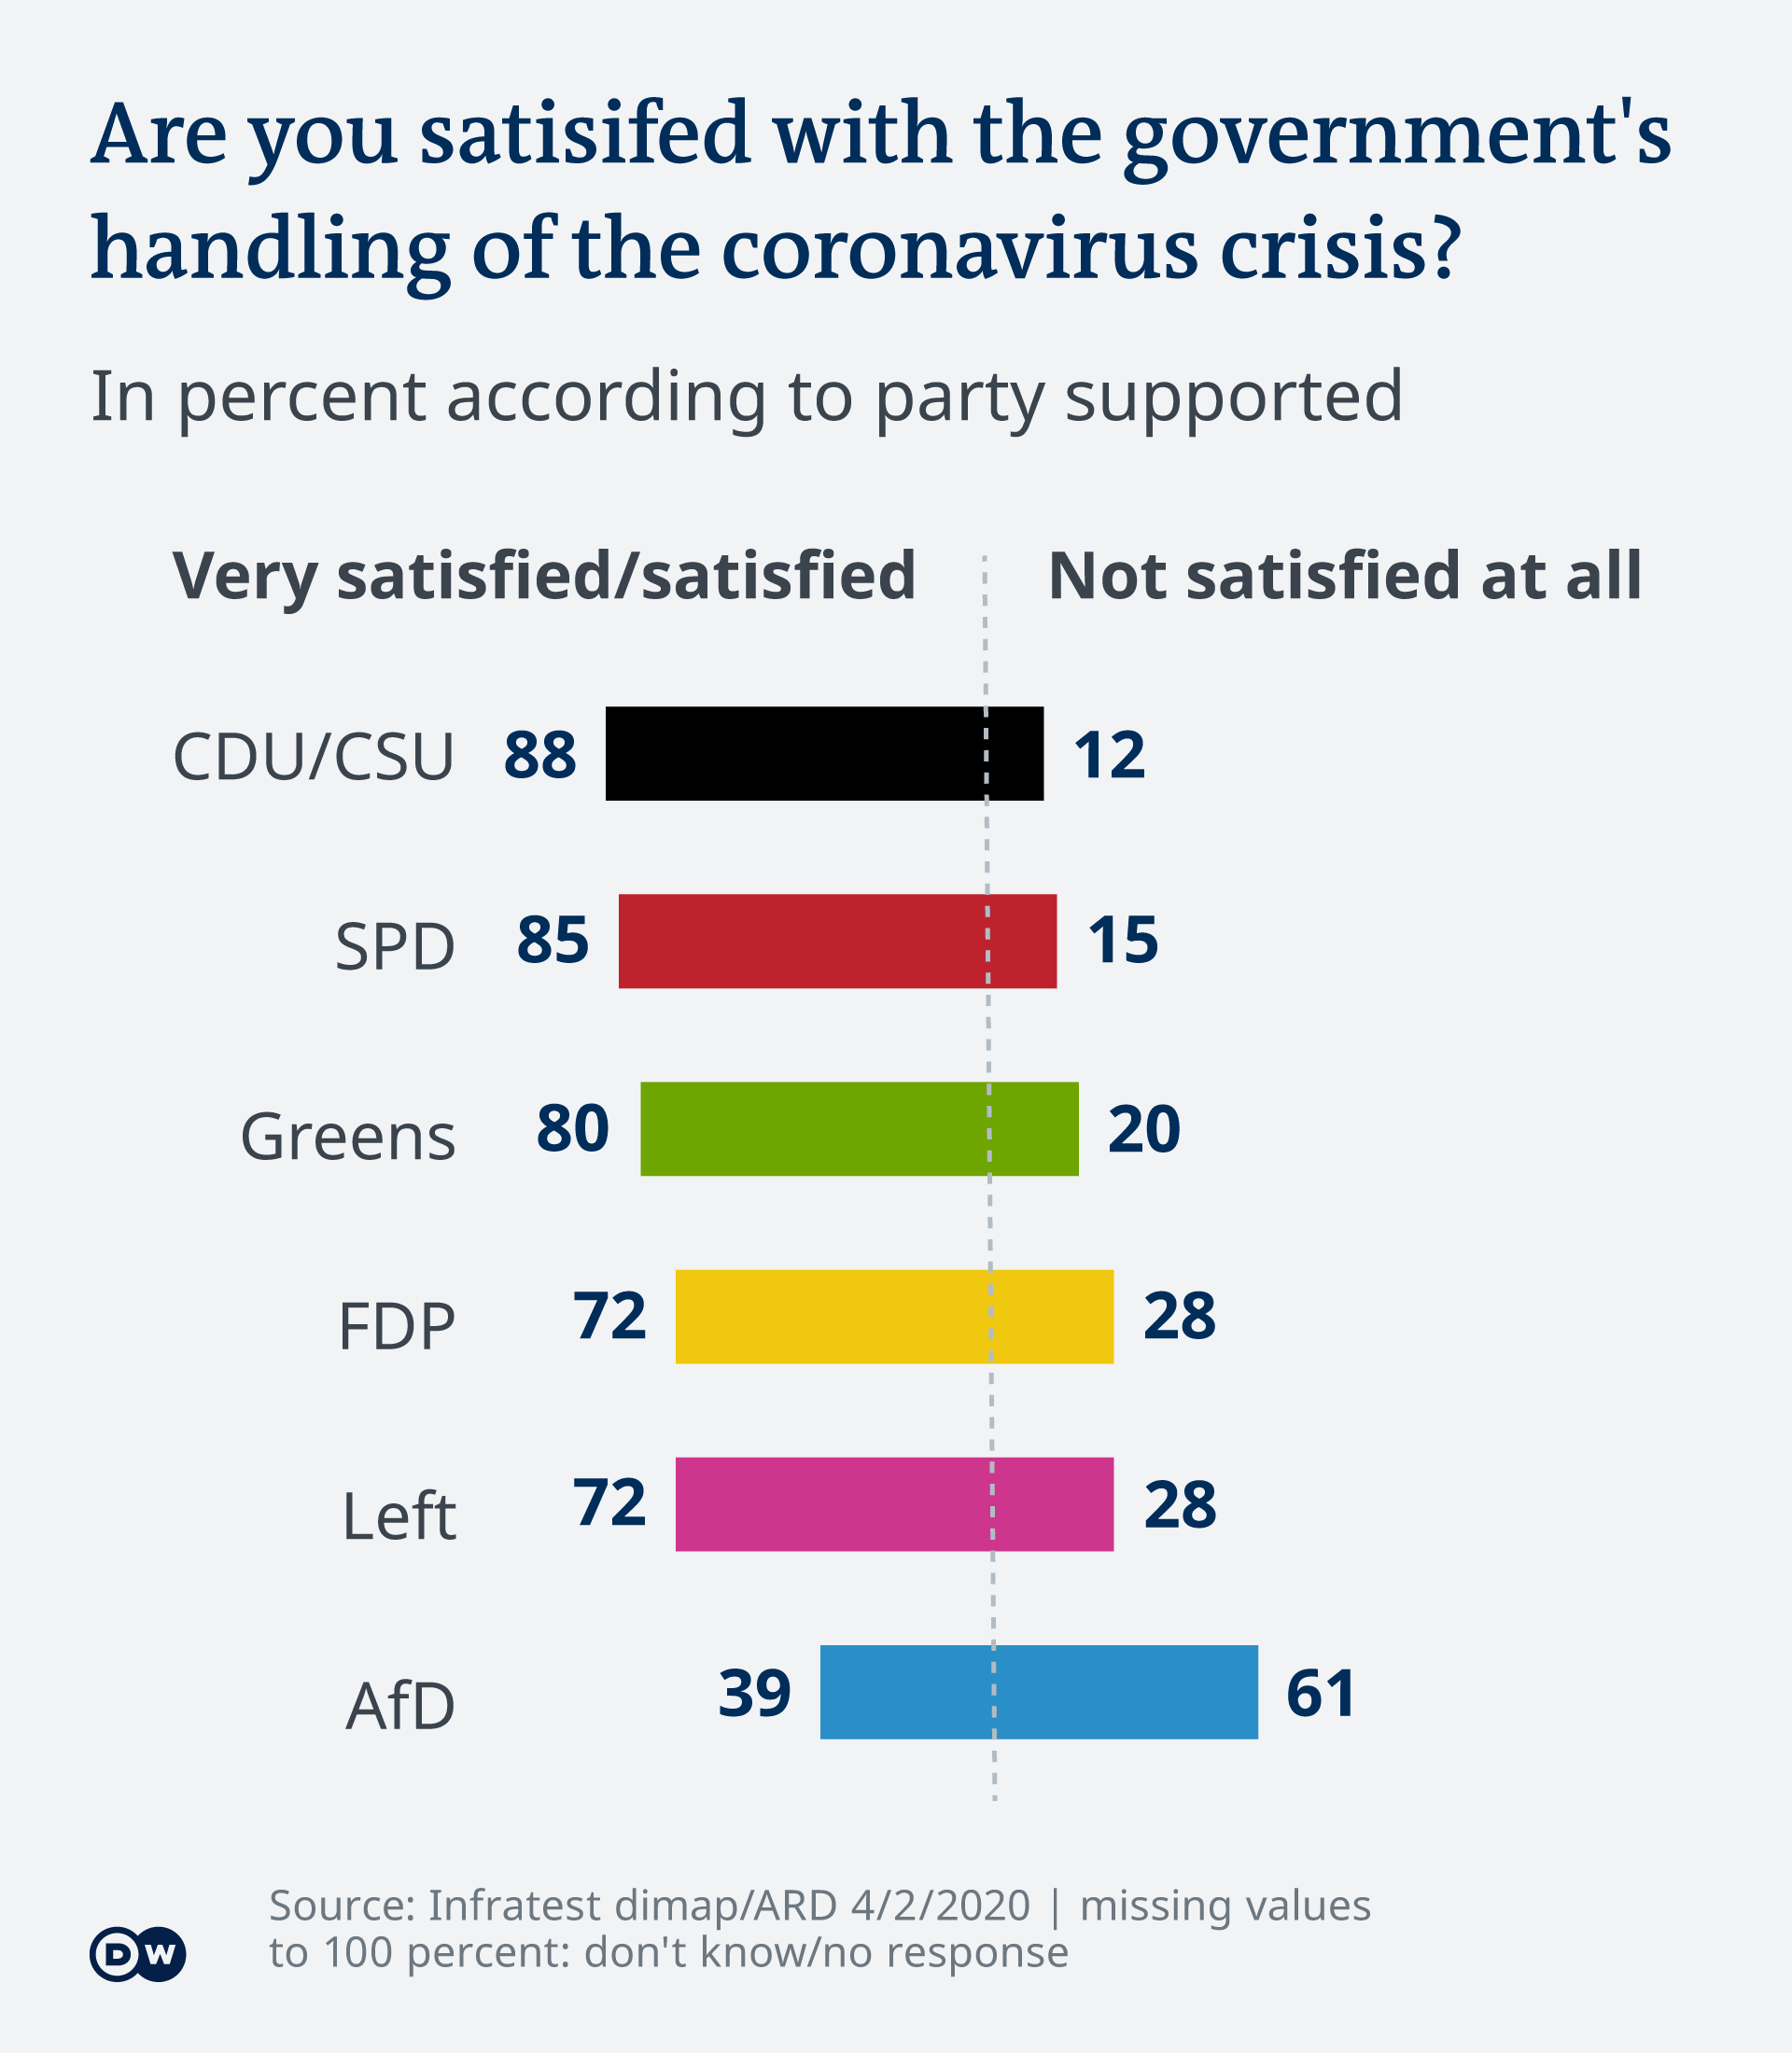 Most Germans of voting age approve of the measures imposed by the German government